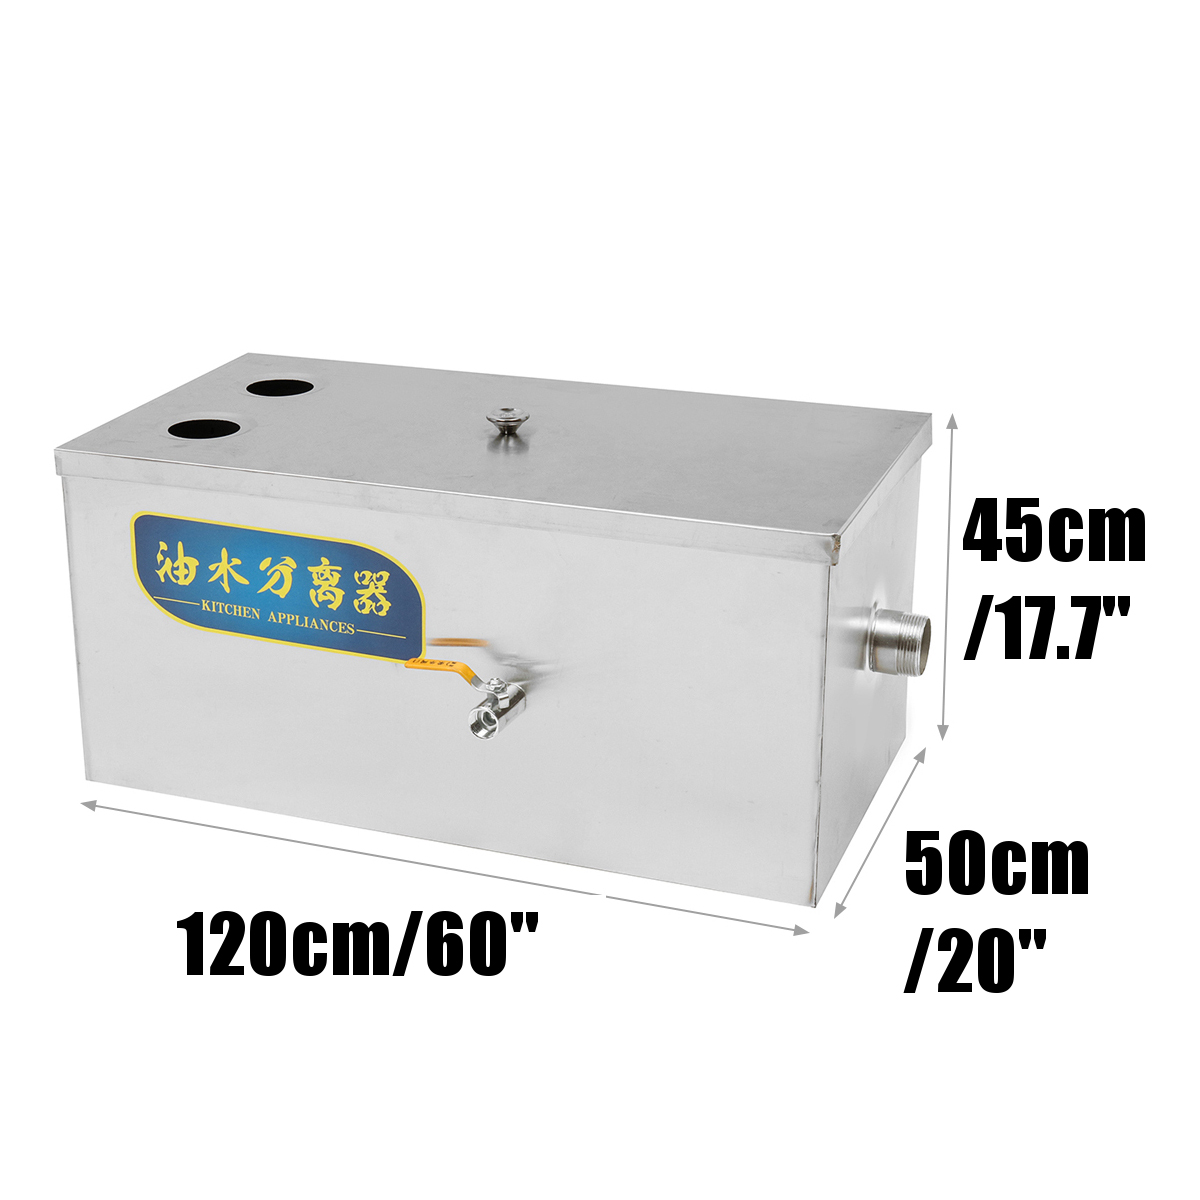 14L Stainless Steel Grease Trap Interceptor Filter Commercial Interceptor Grease Trap